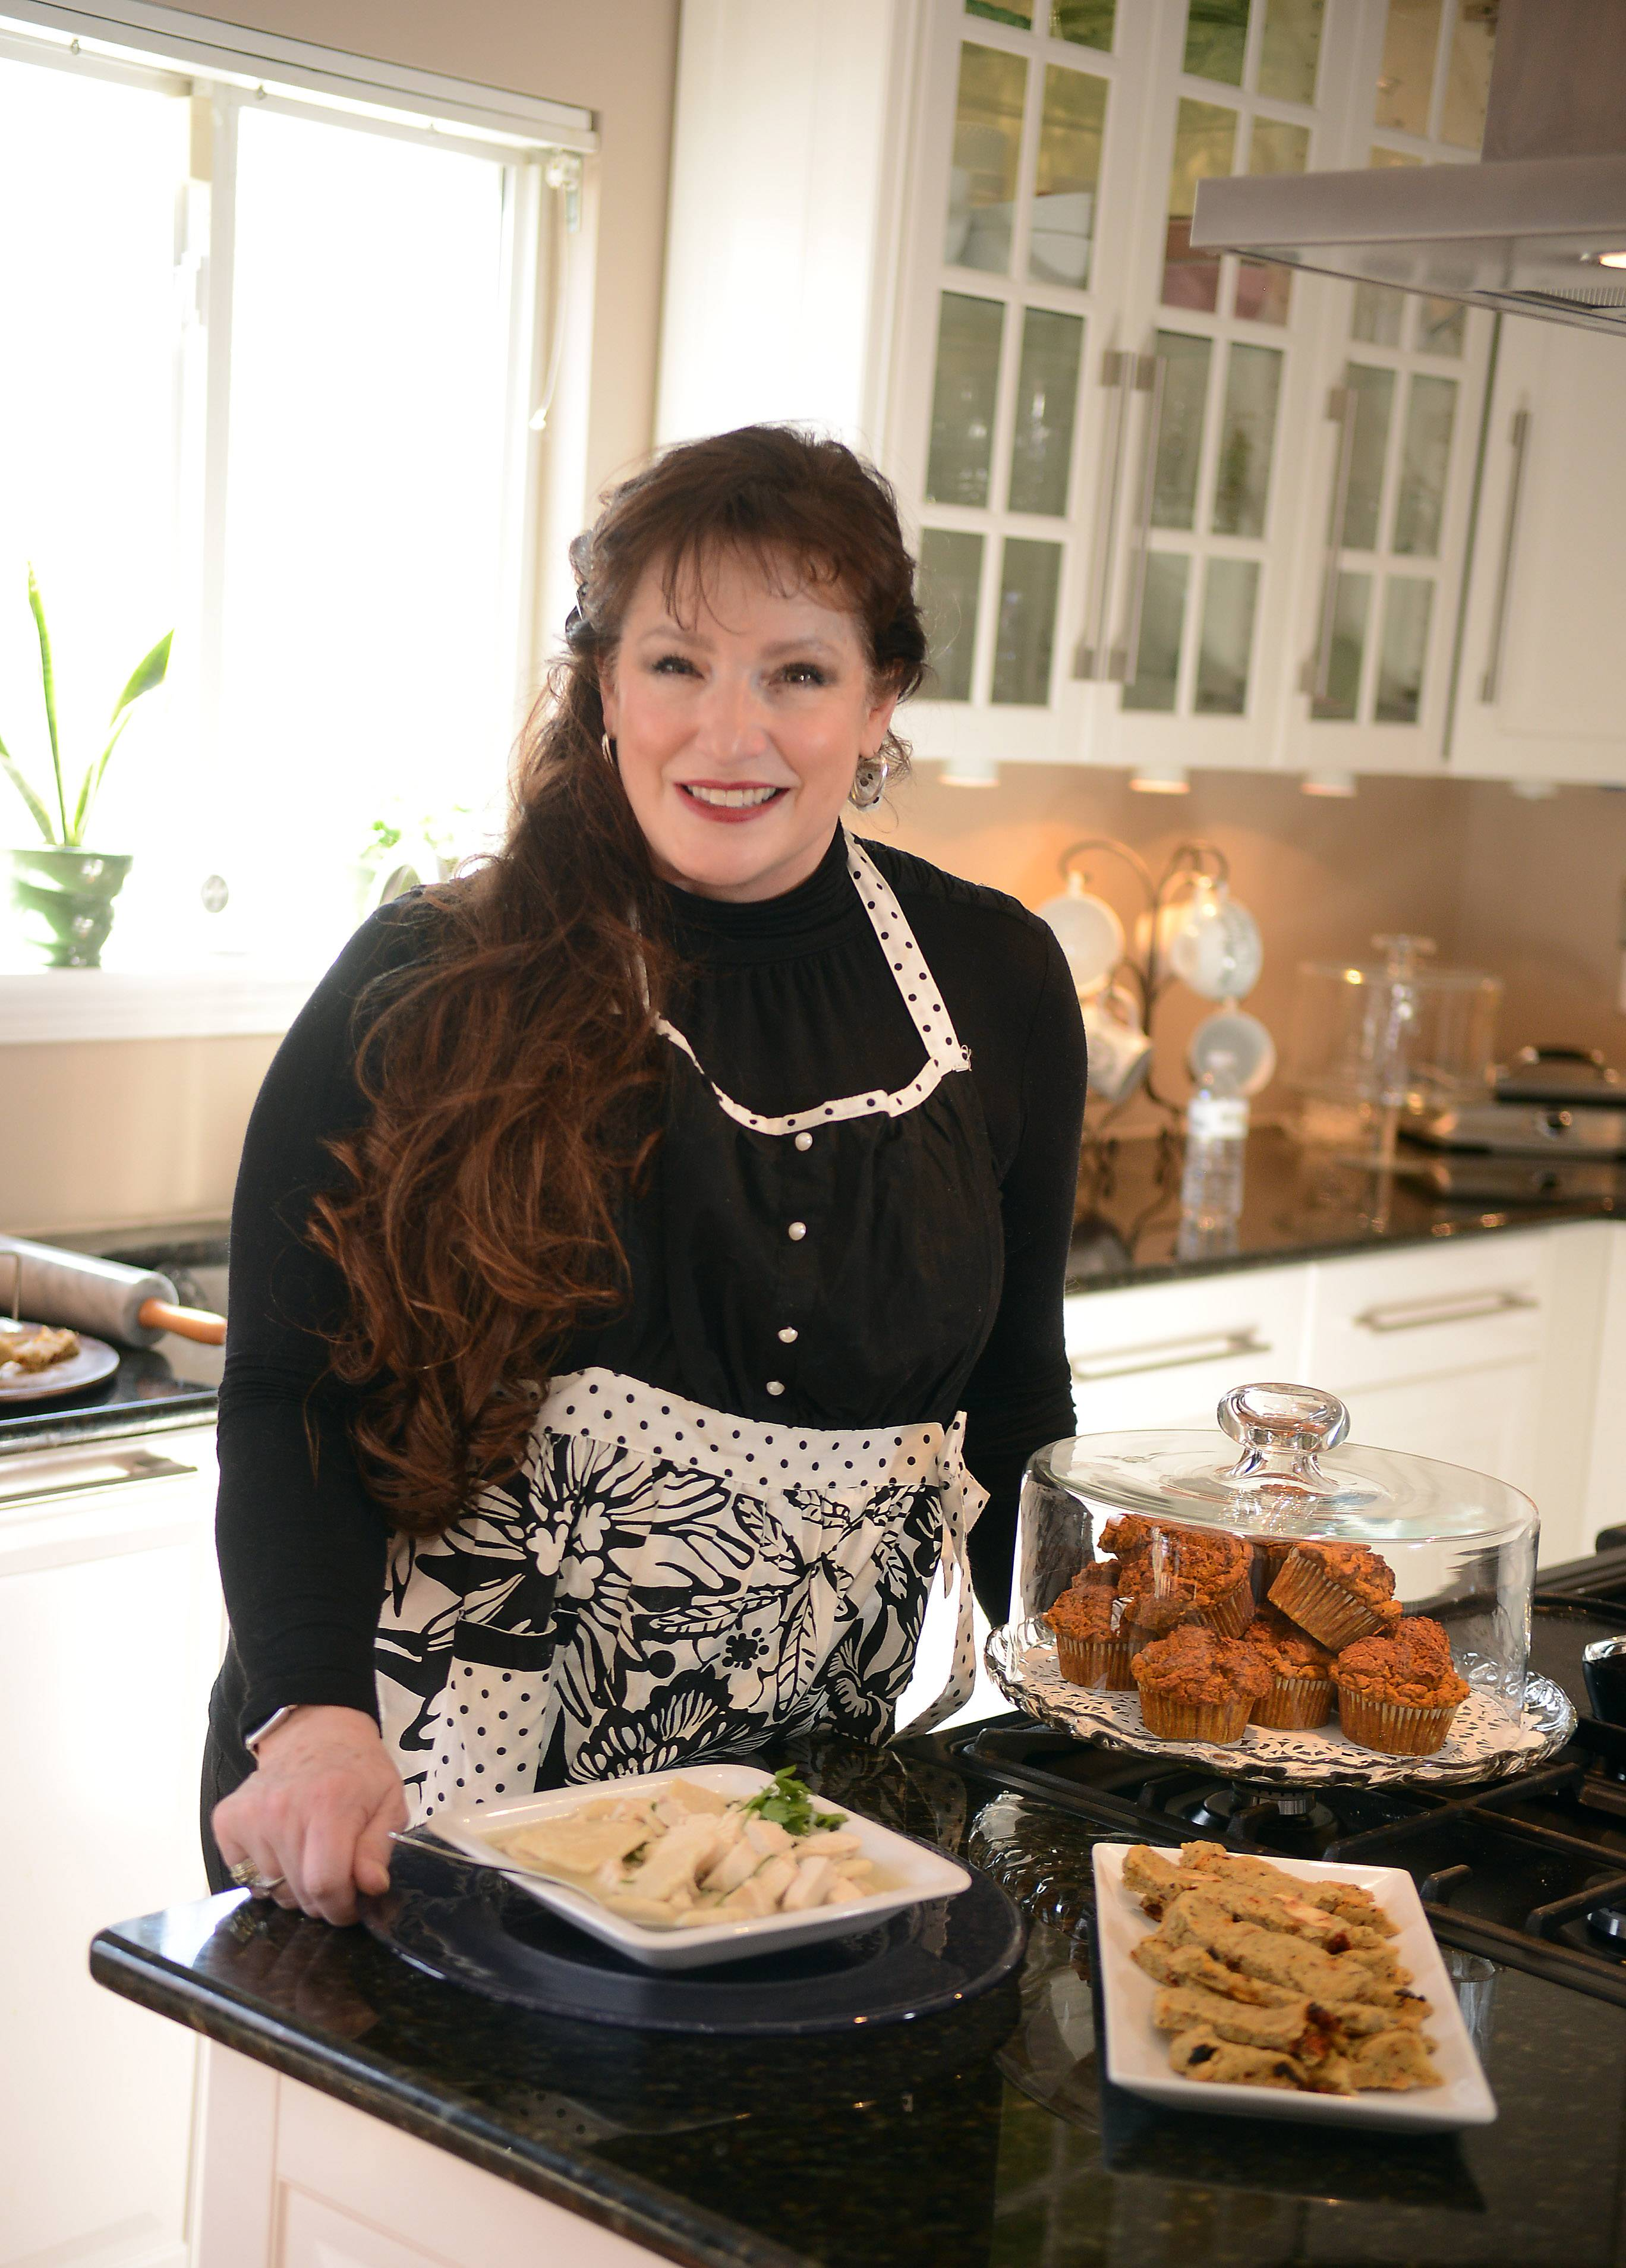 Cook of the Week: Mom reworks favorite recipes to fit gluten-free lifestyle